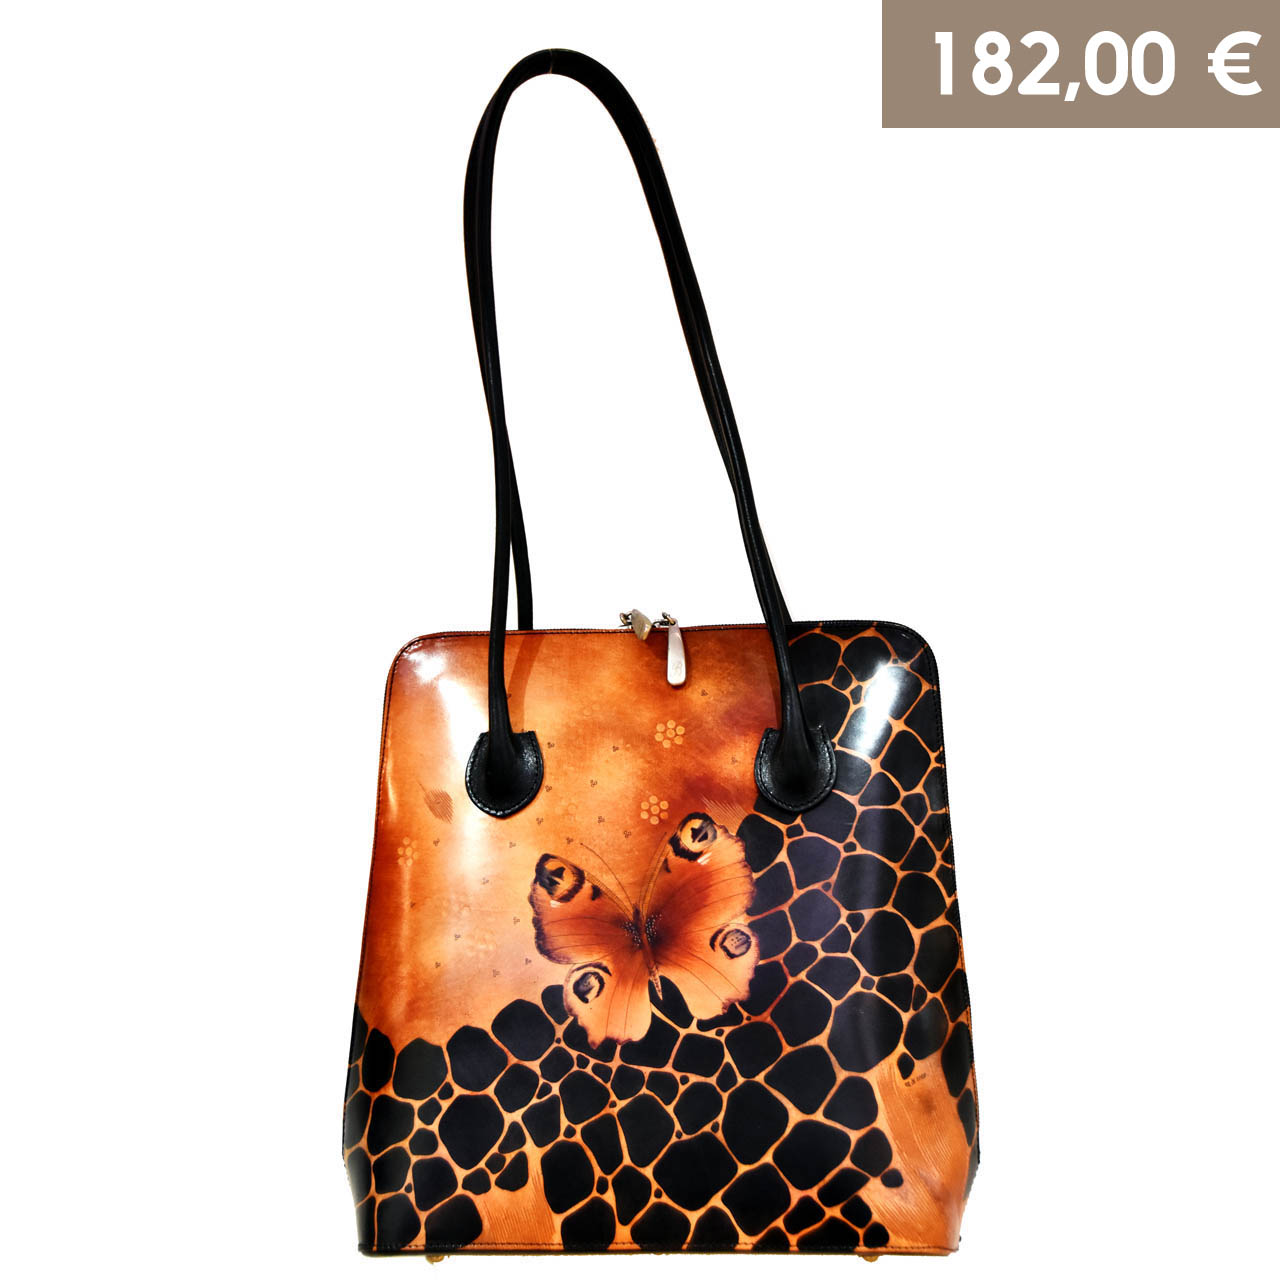 art-bag-bambas-collection-barin-events-butterfly-spots-with-price-sale